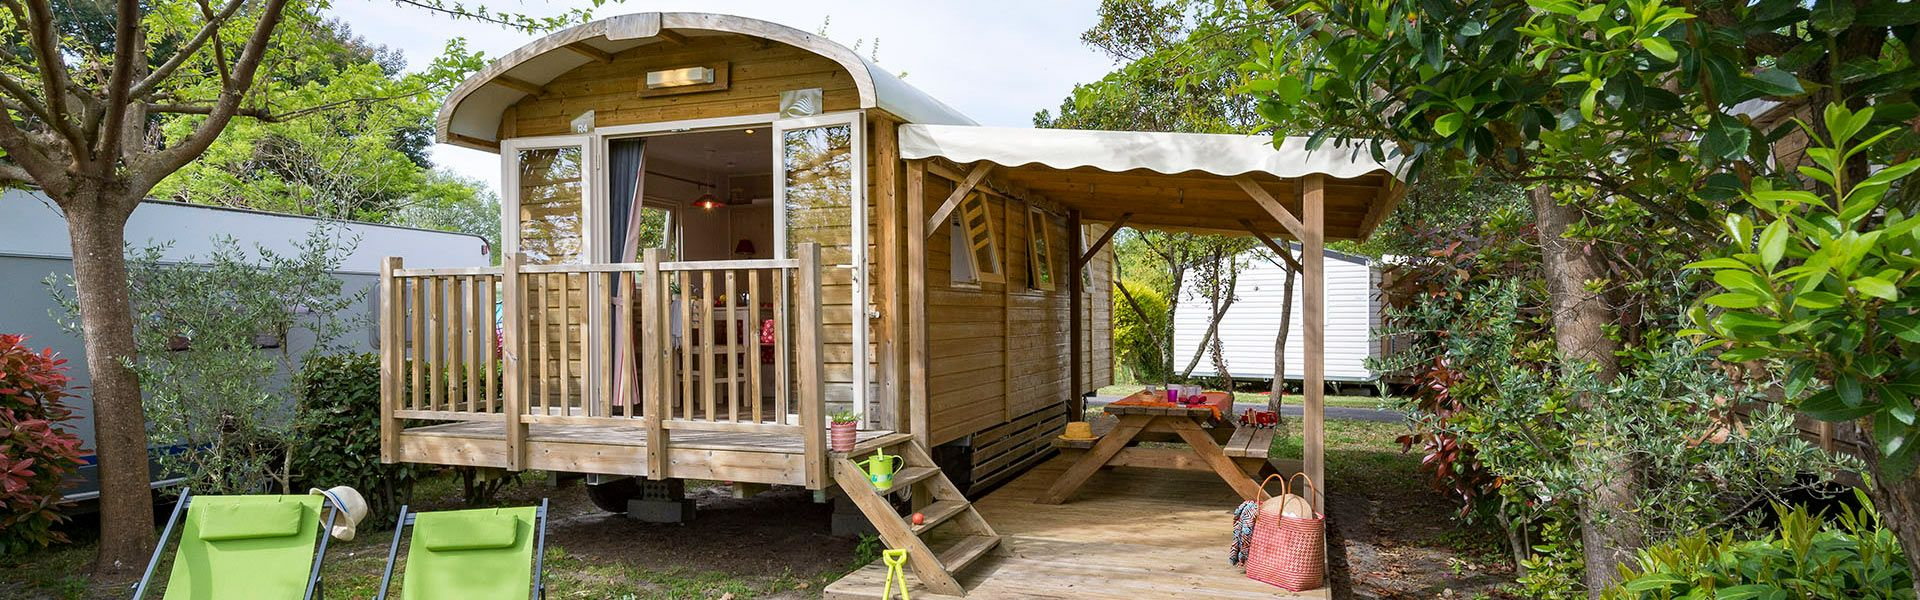 Camping Roulottes